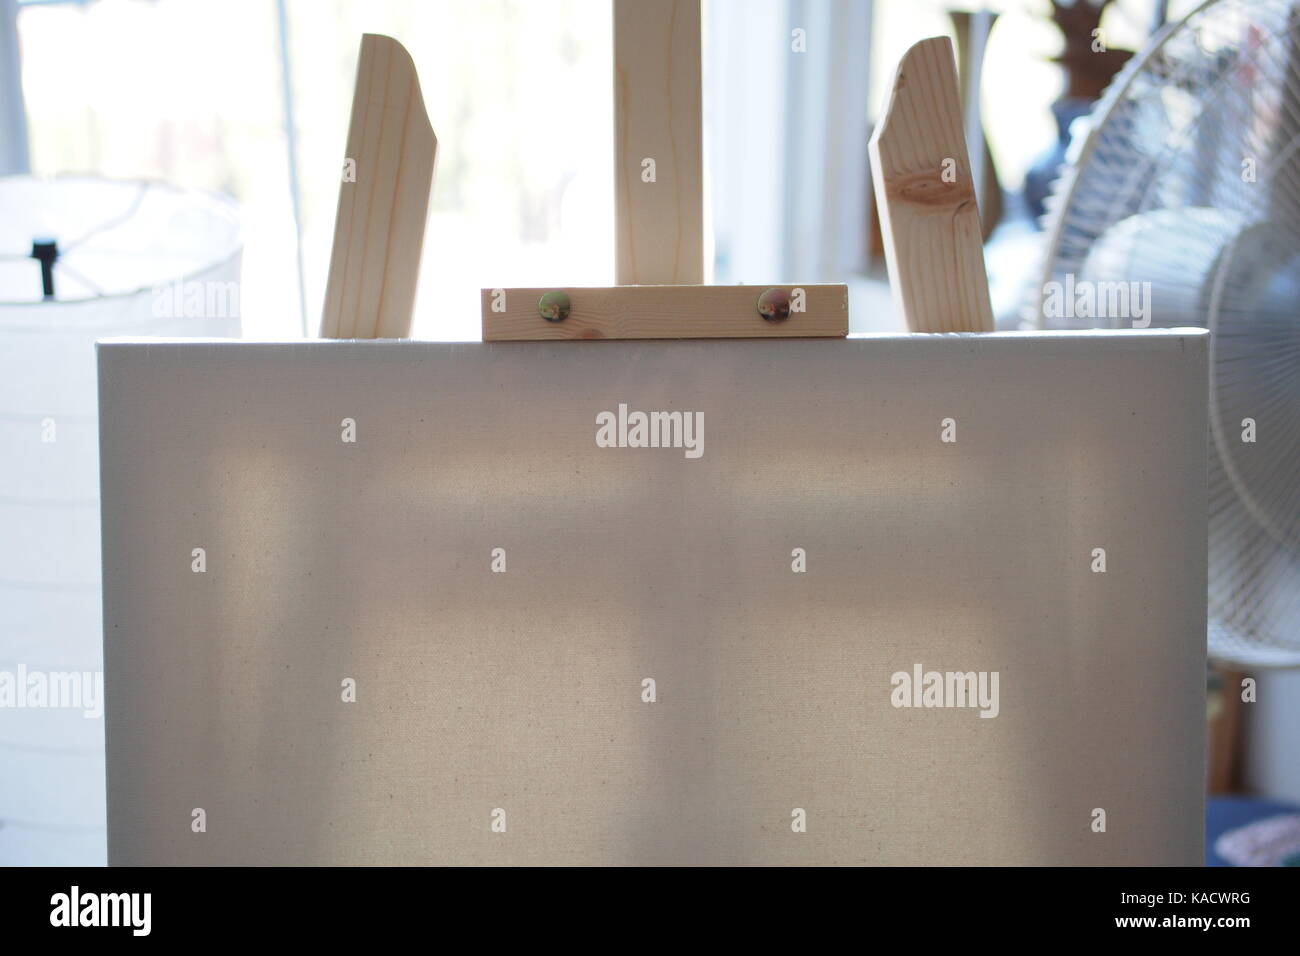 Light shining through a blank artist's canvas resting on a wooden easel. - Stock Image